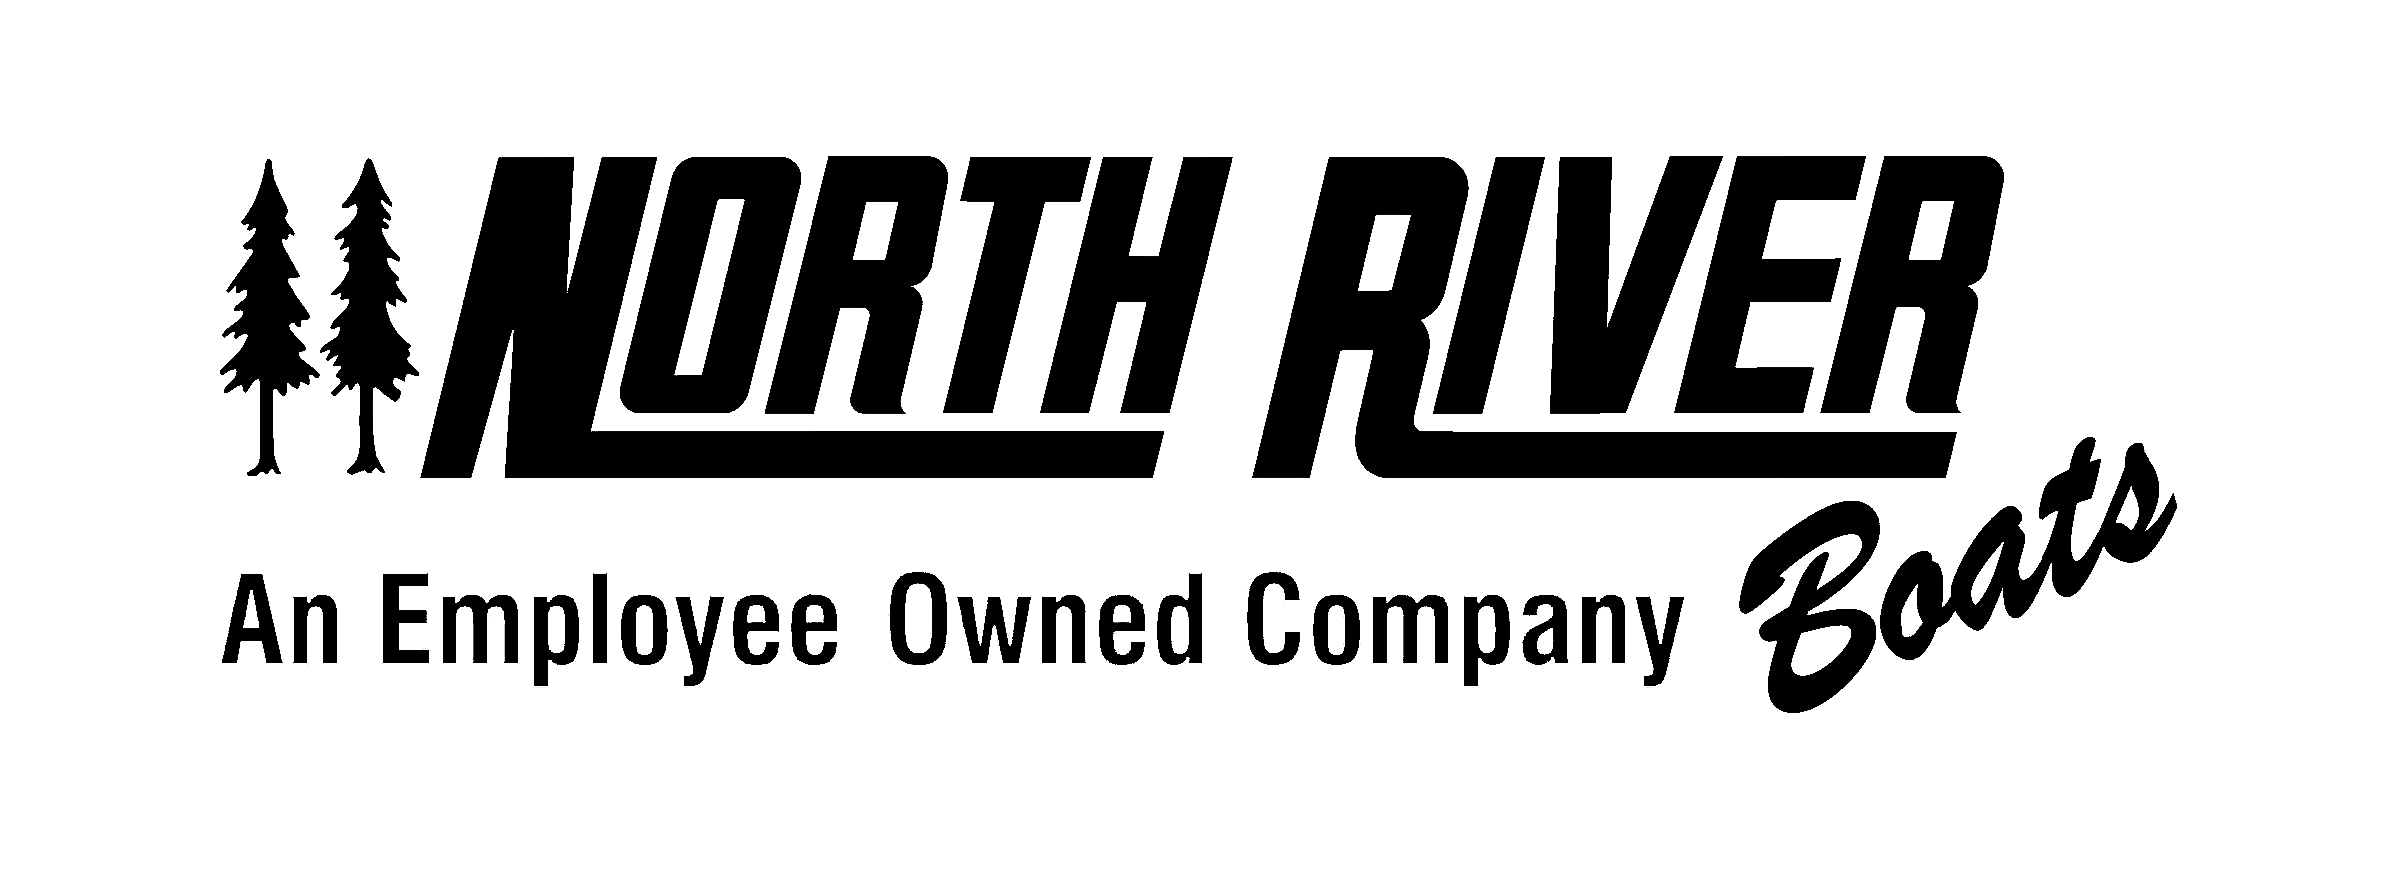 NR EMPLOYEE-OWNED BLACK LOGO TRANSPARANT BACKGROUND